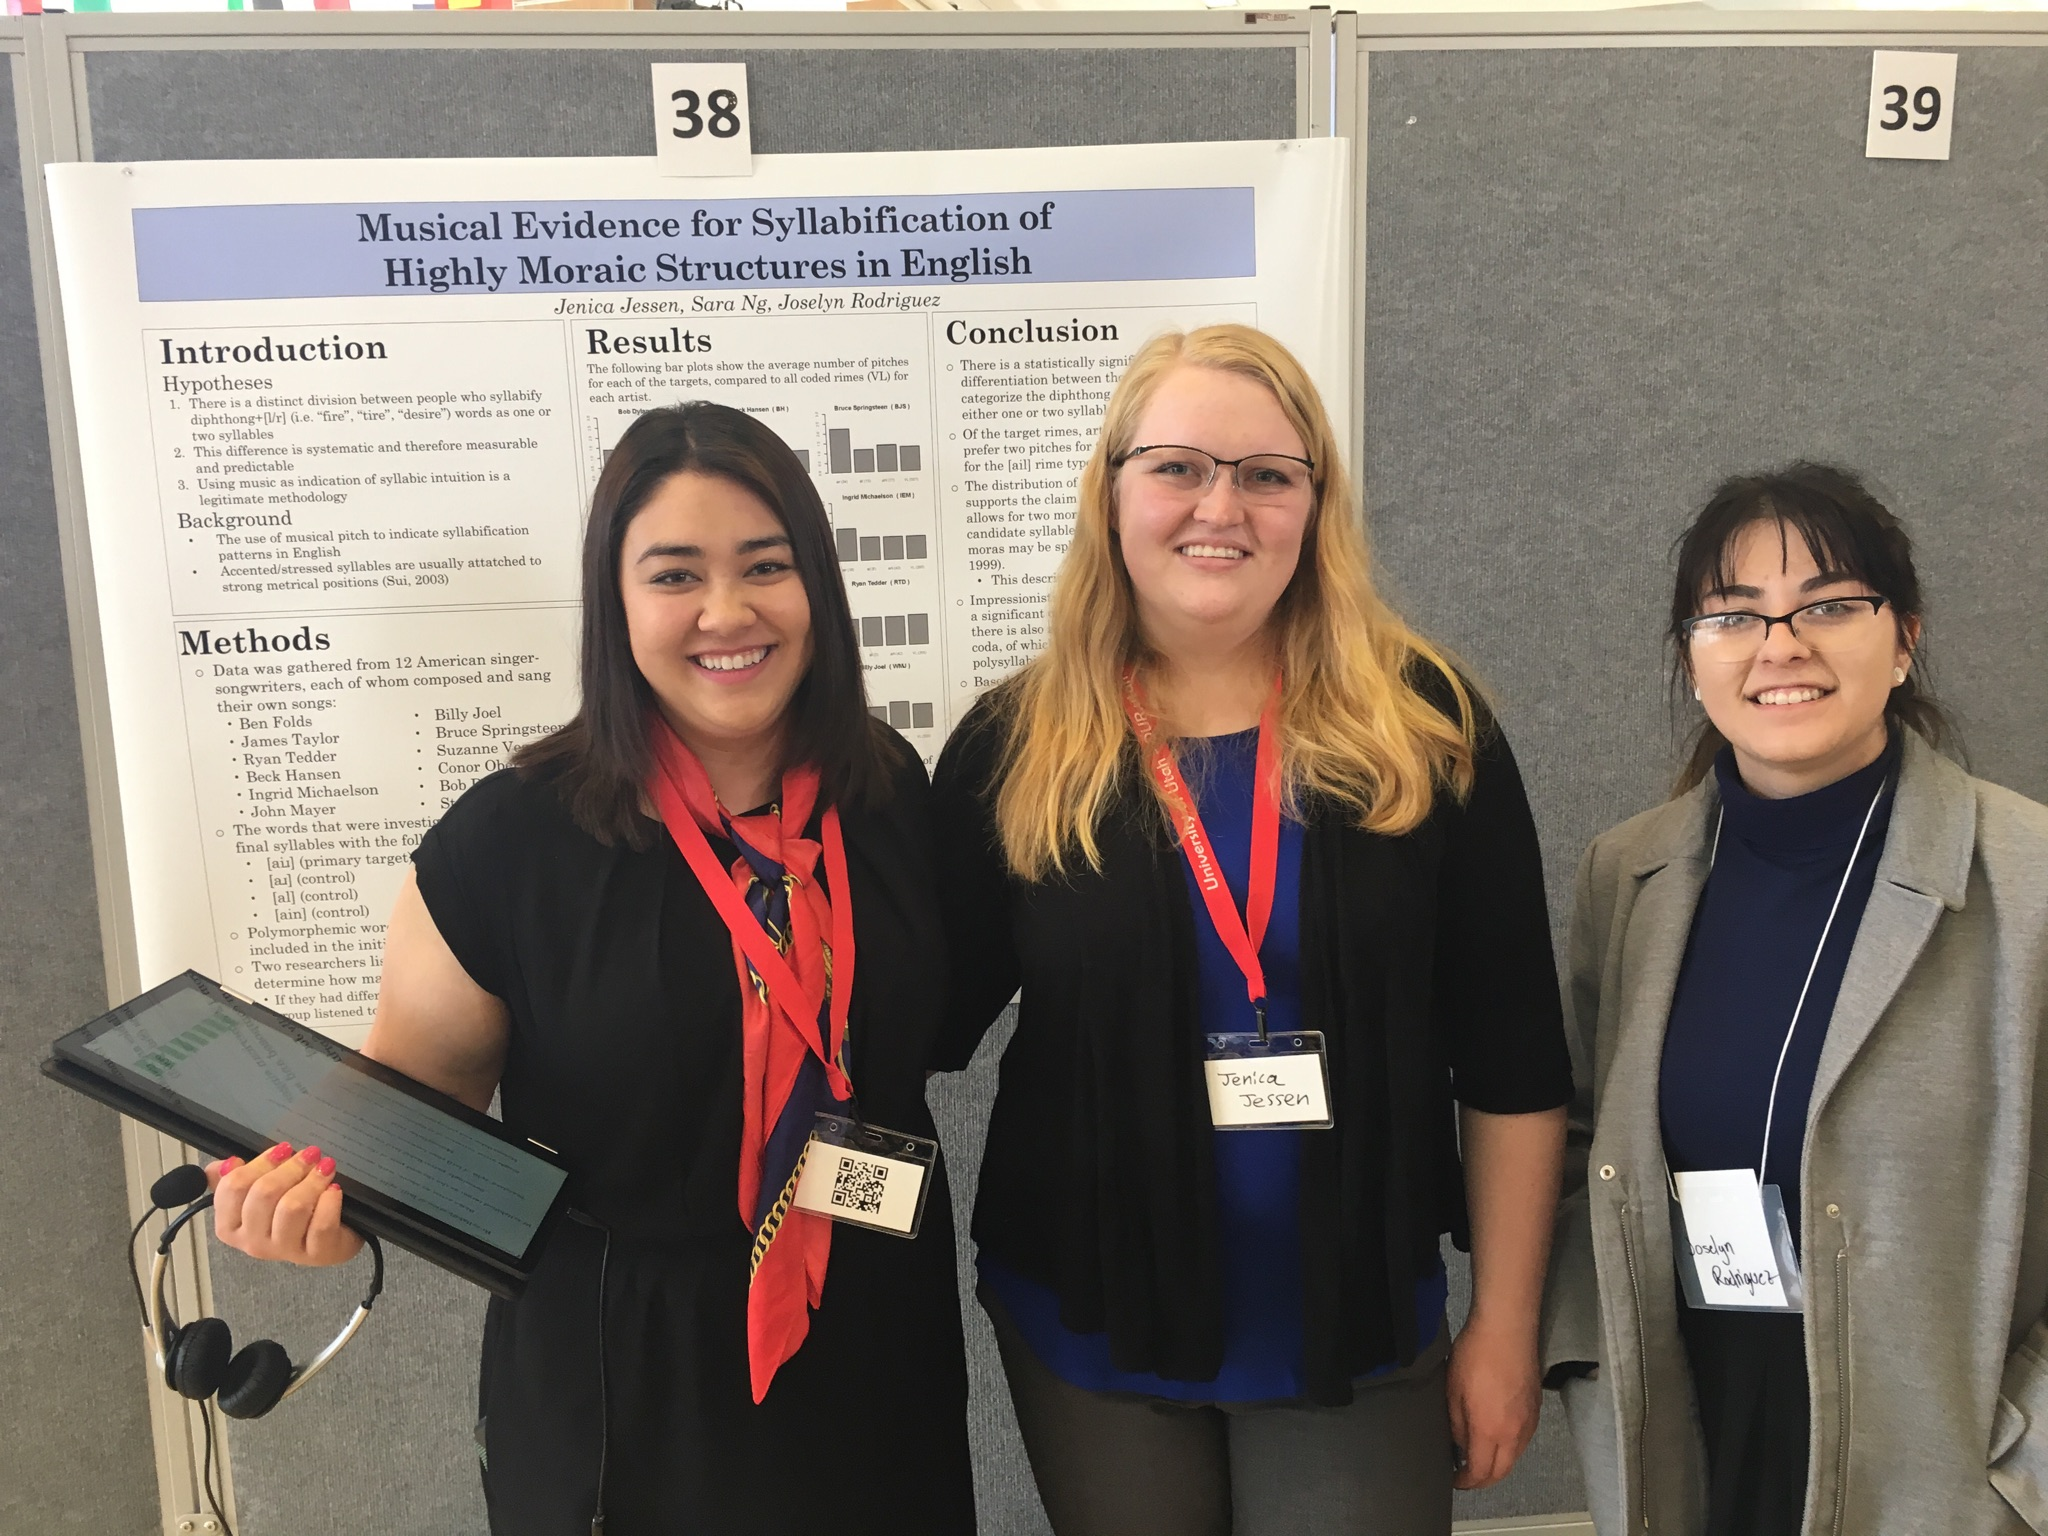 Jenica Jessen, Sara Ng, Joselyn Rodriguez, and Eve Olson presented at the Undergraduate Research Symposium on April 4th.